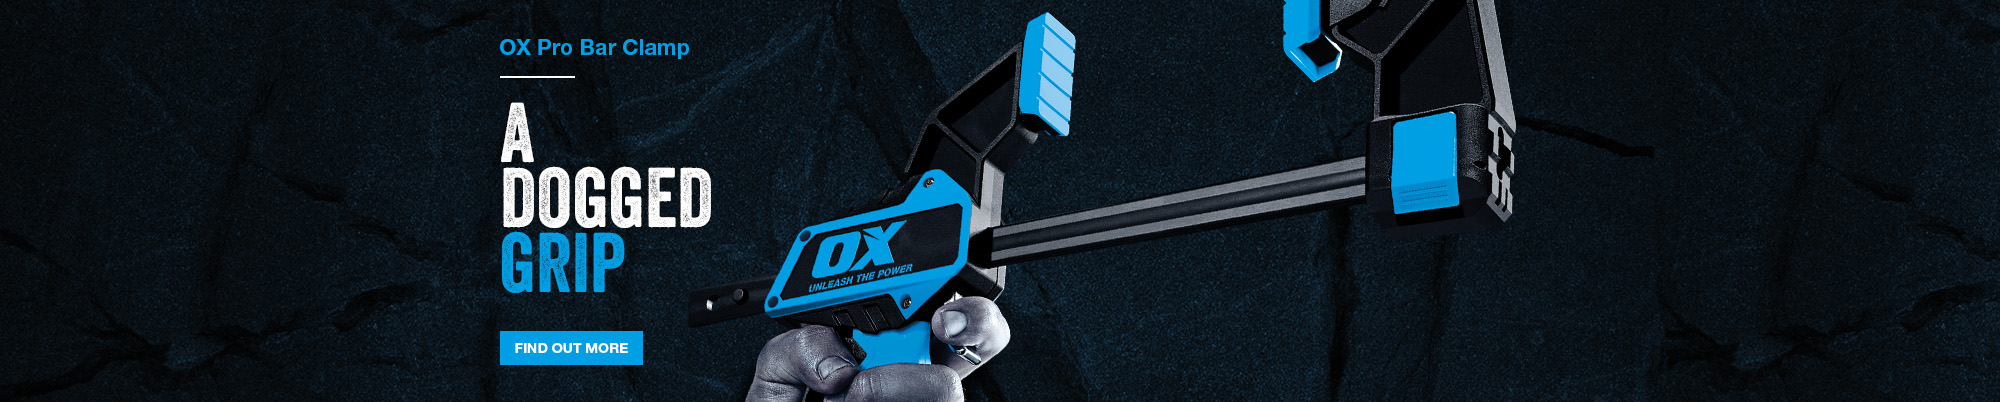 Ox Pro Bar Clamp